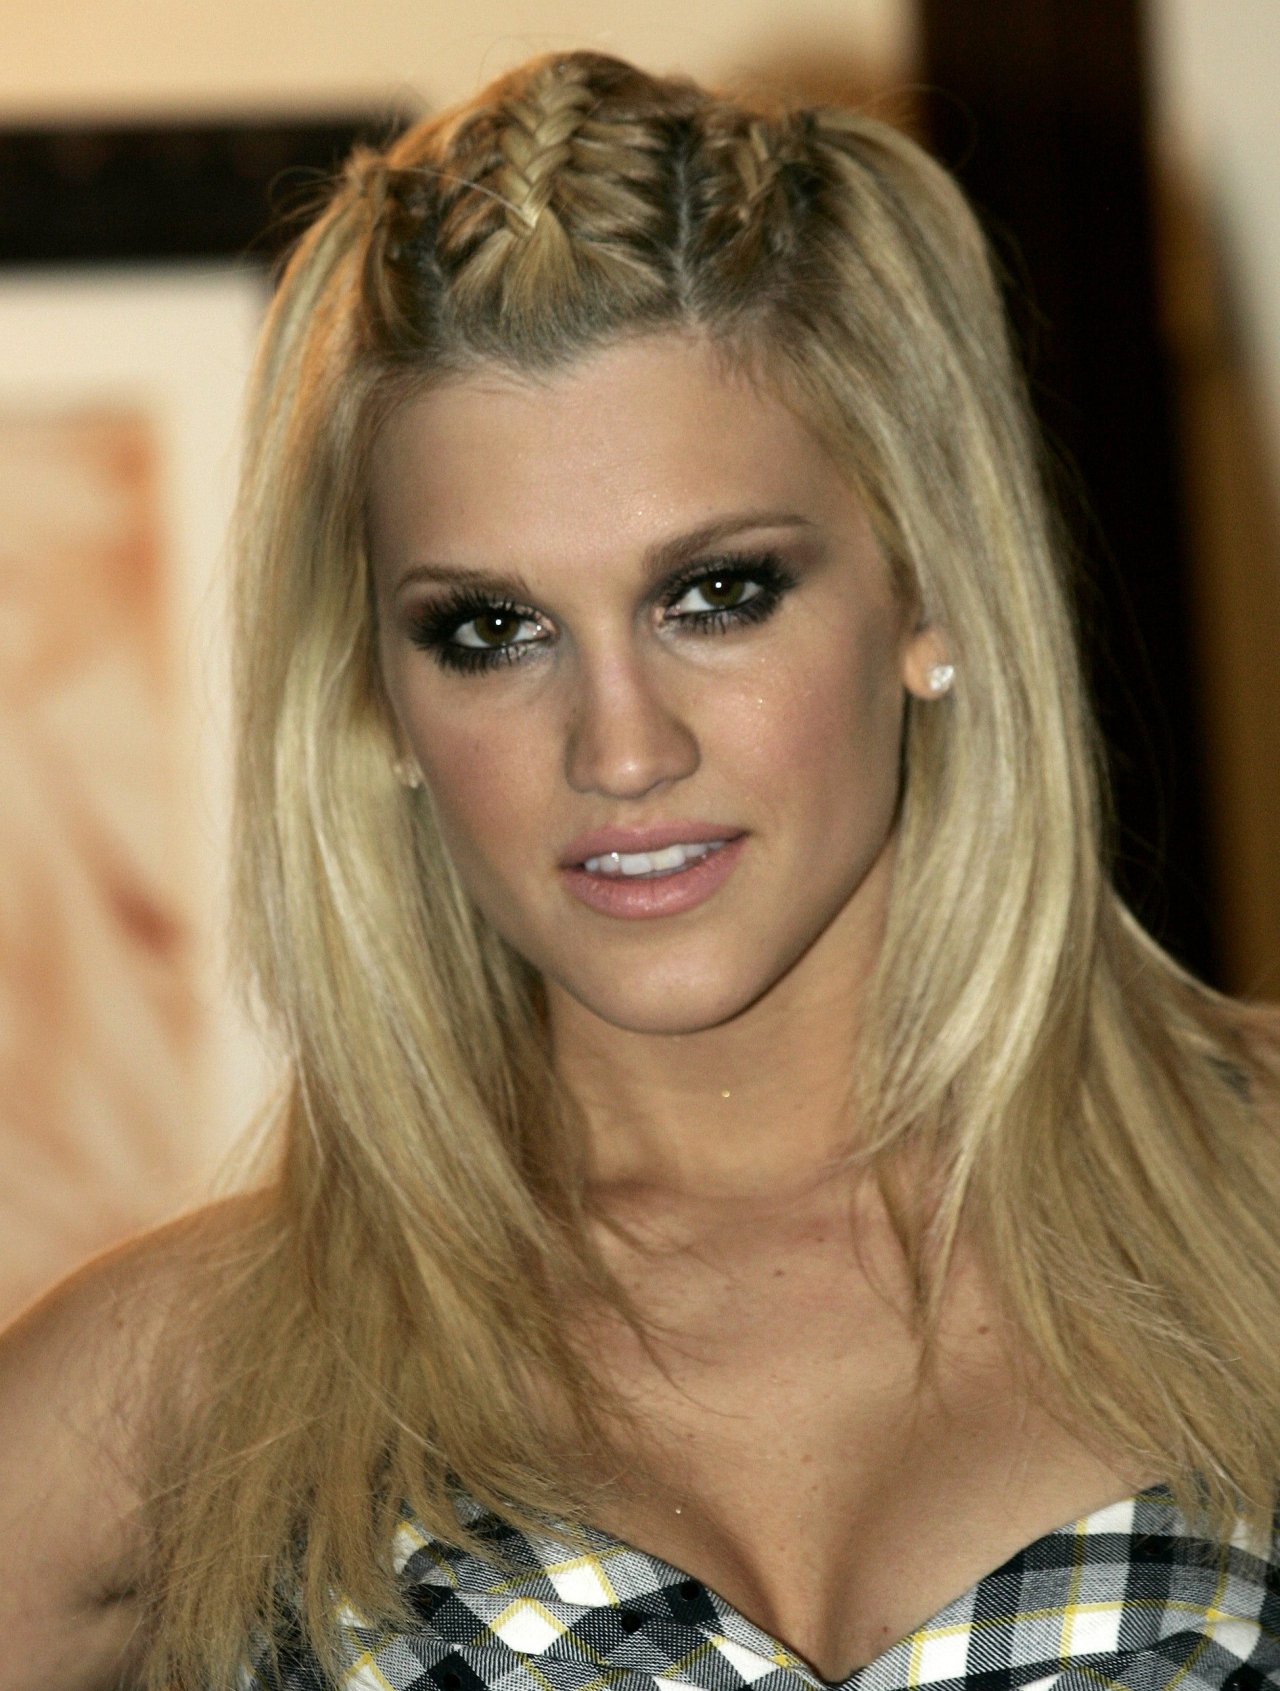 Ashley Roberts leaked wallpapers